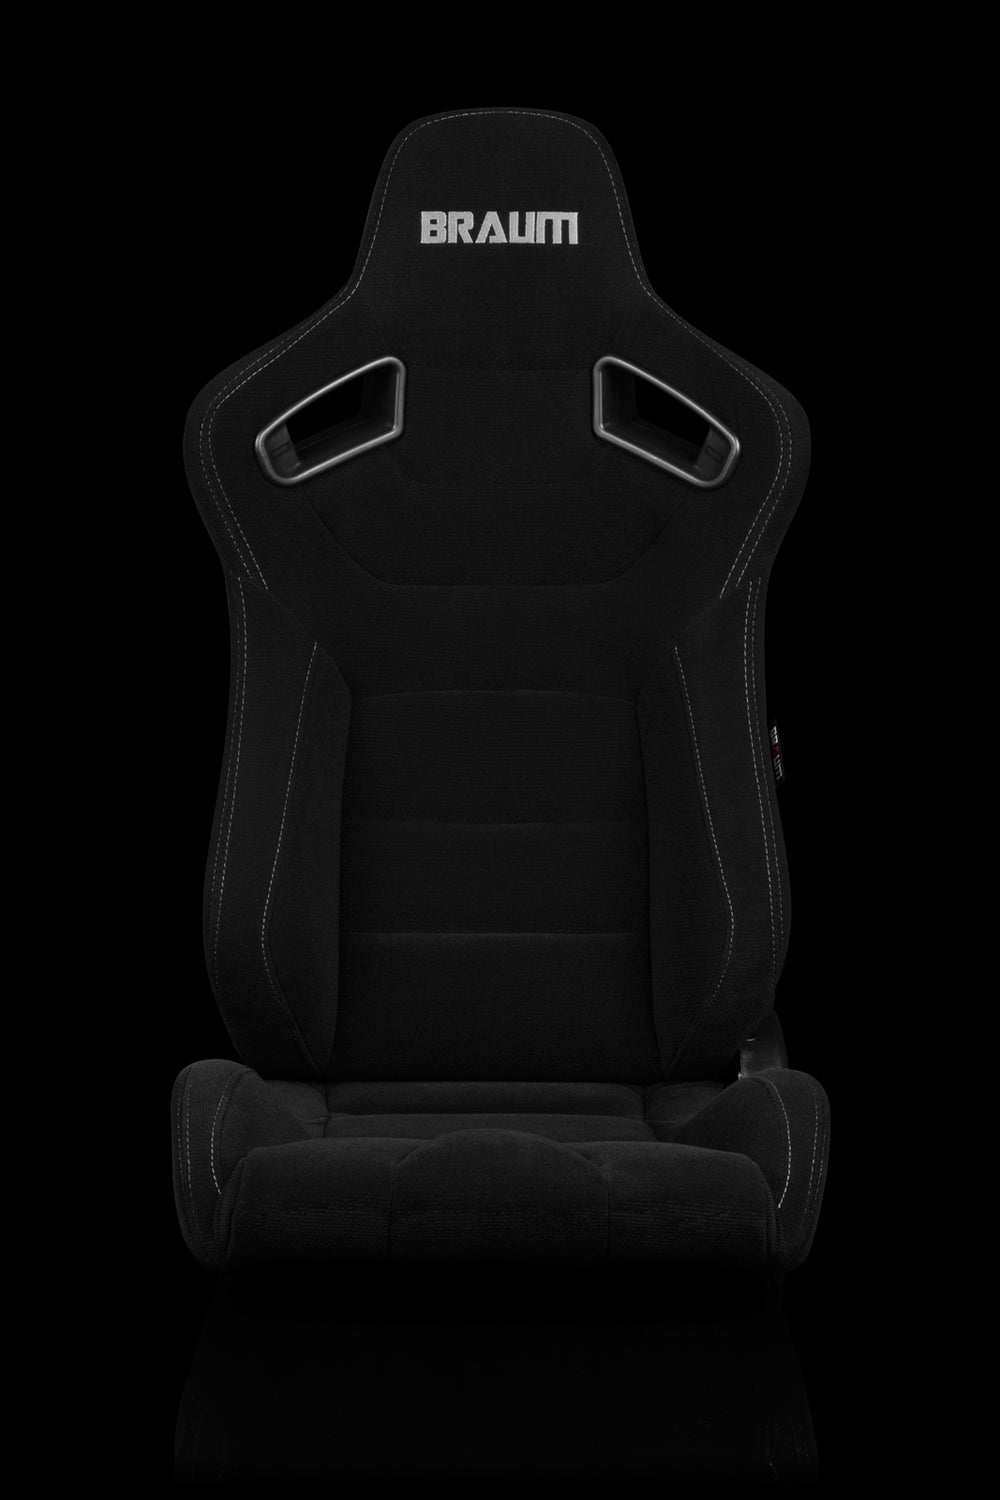 ELITE SERIES RACING SEATS (BLACK CLOTH) – PAIR